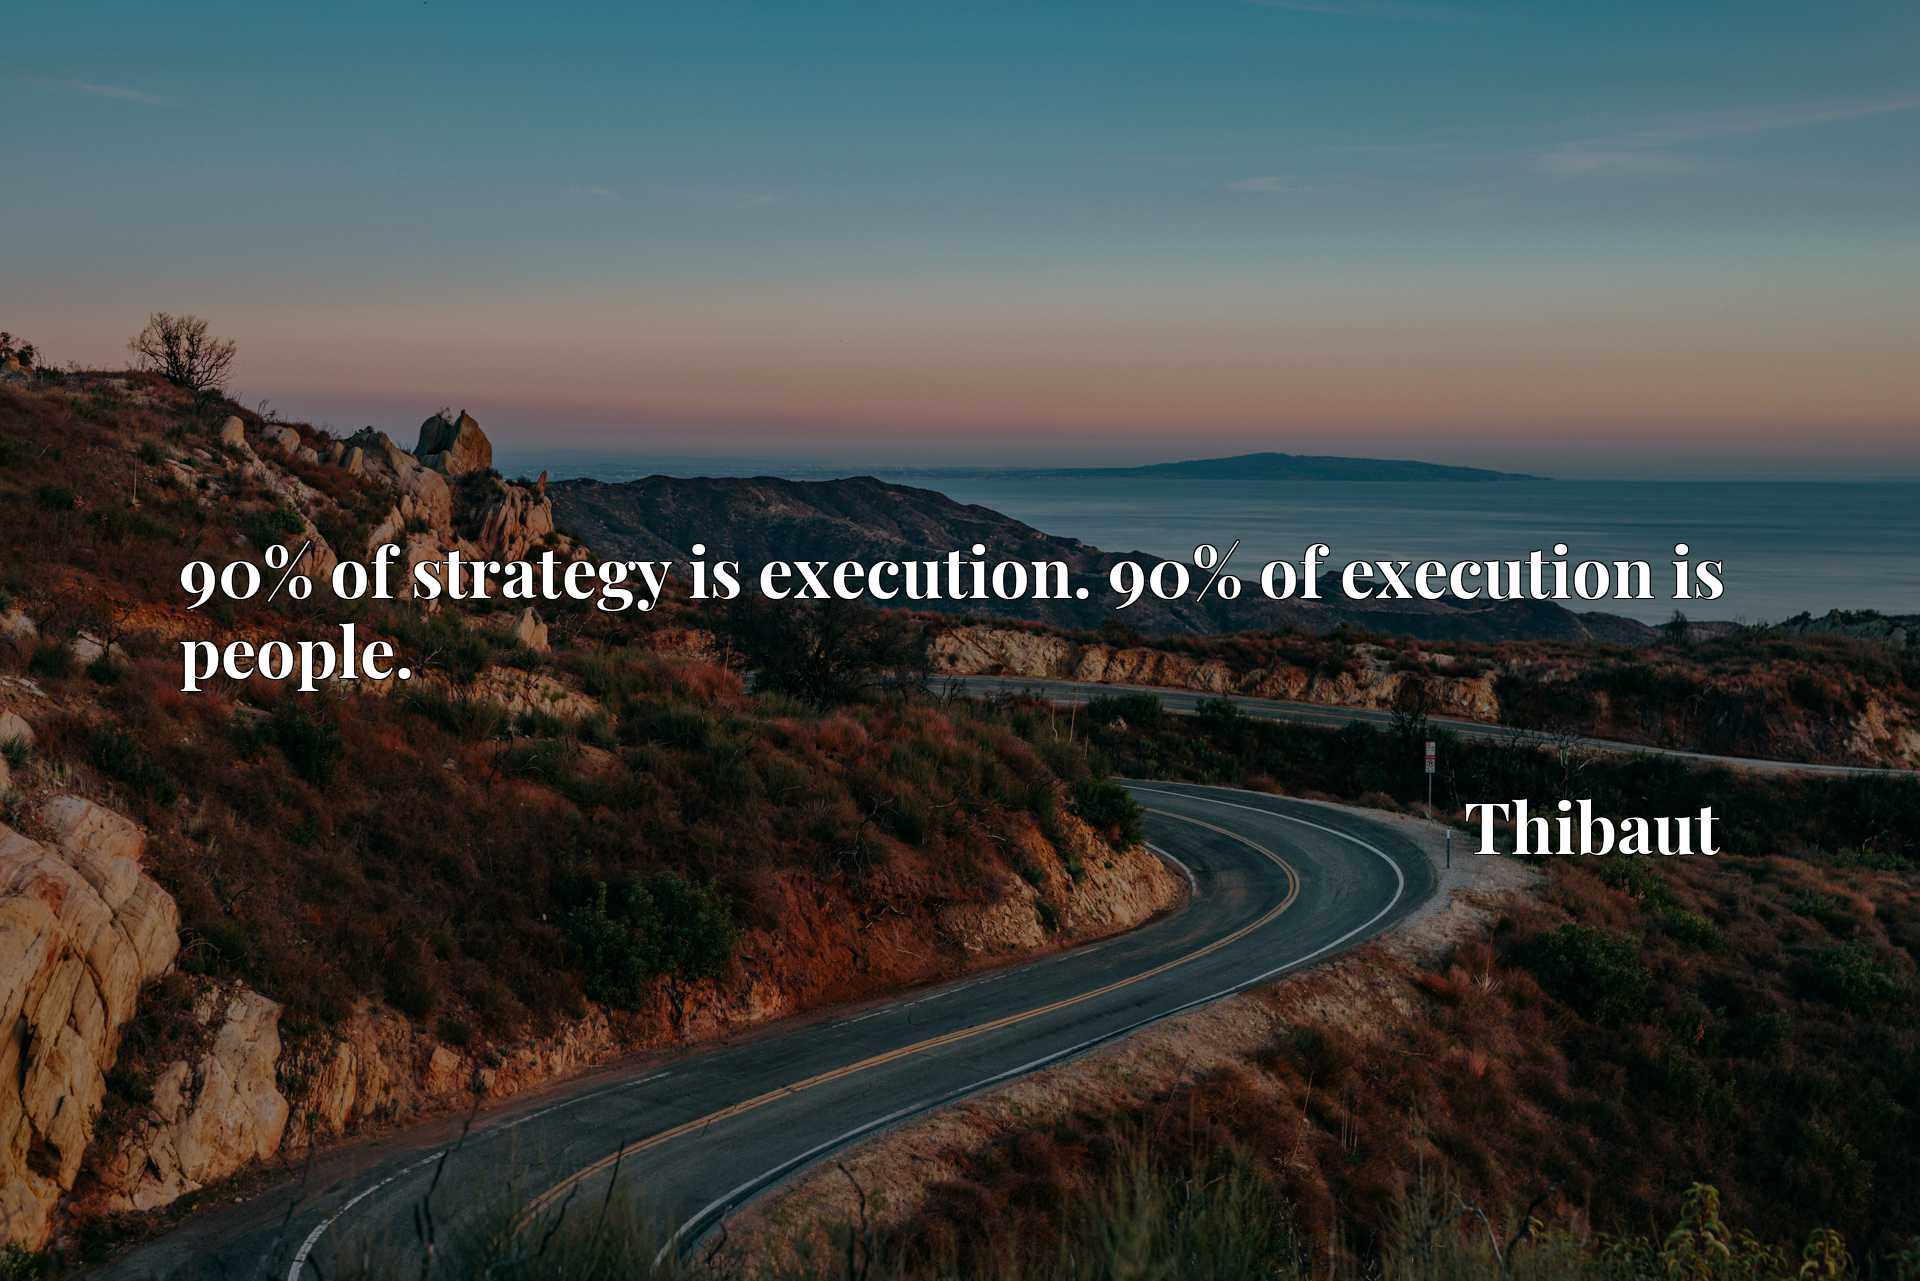 90% of strategy is execution. 90% of execution is people.